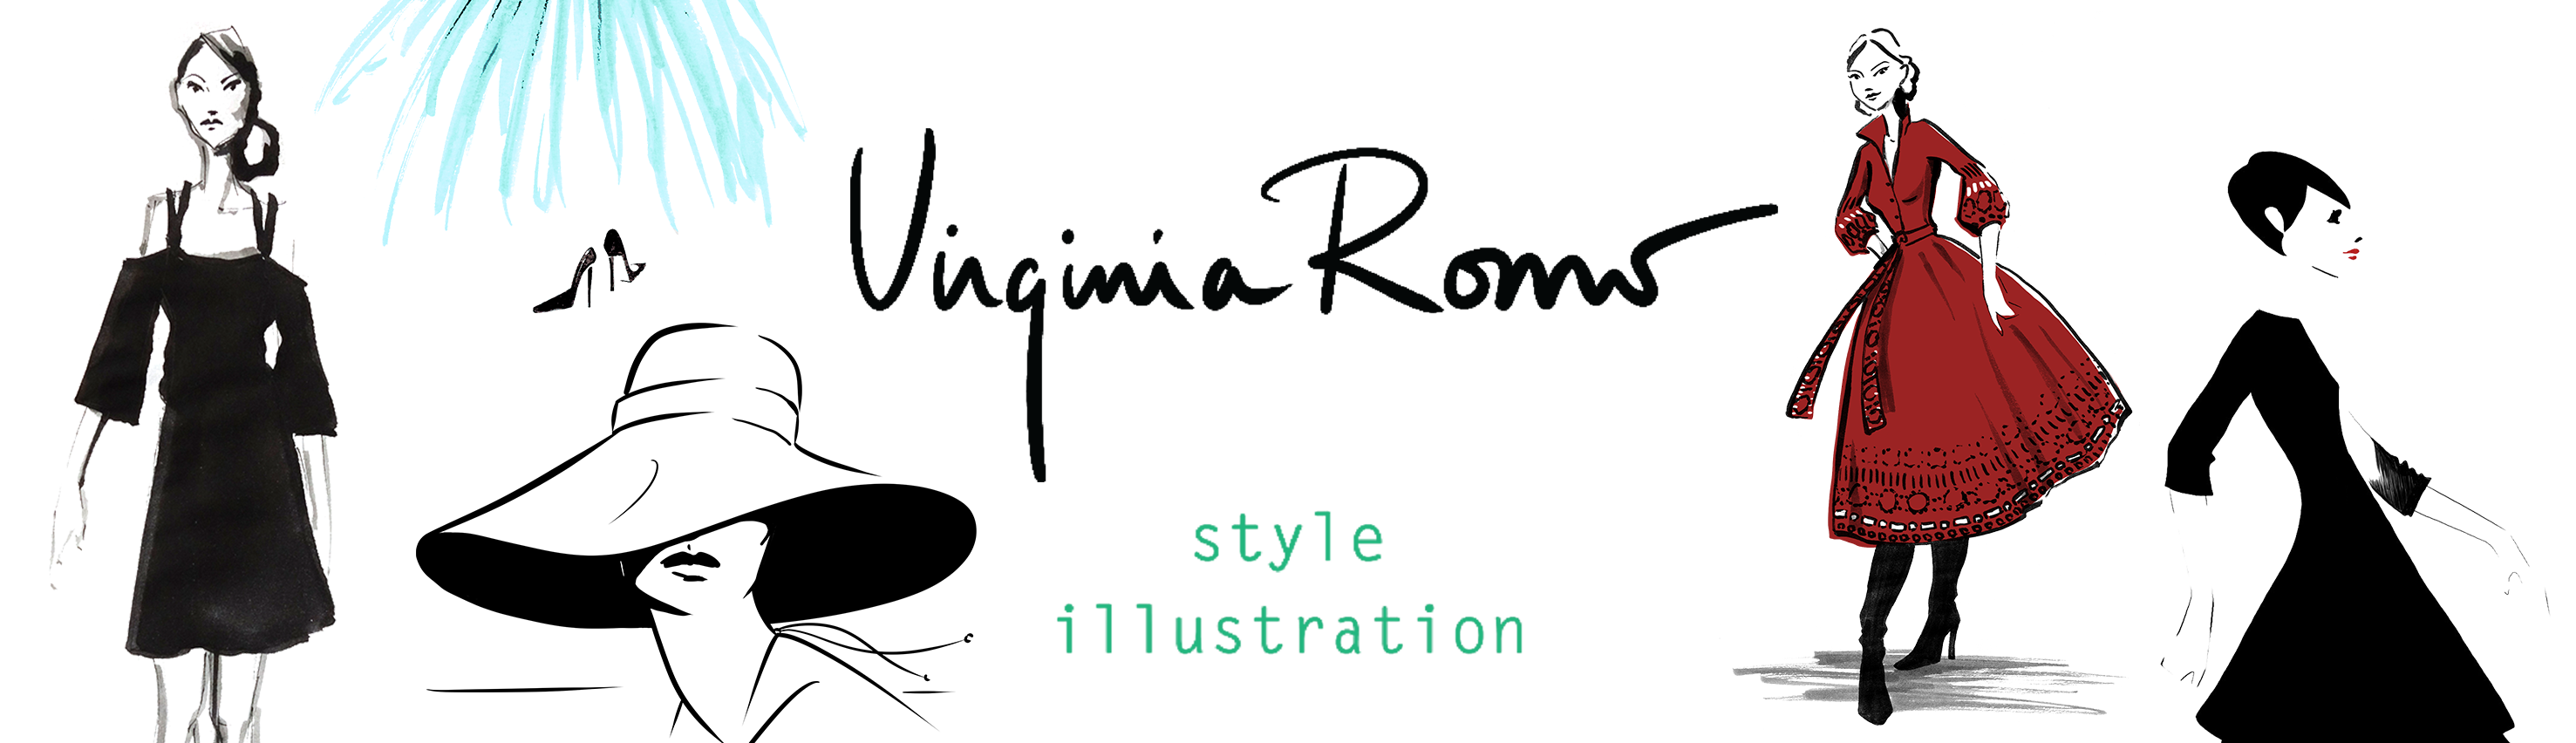 FASHION by Virginia Romo